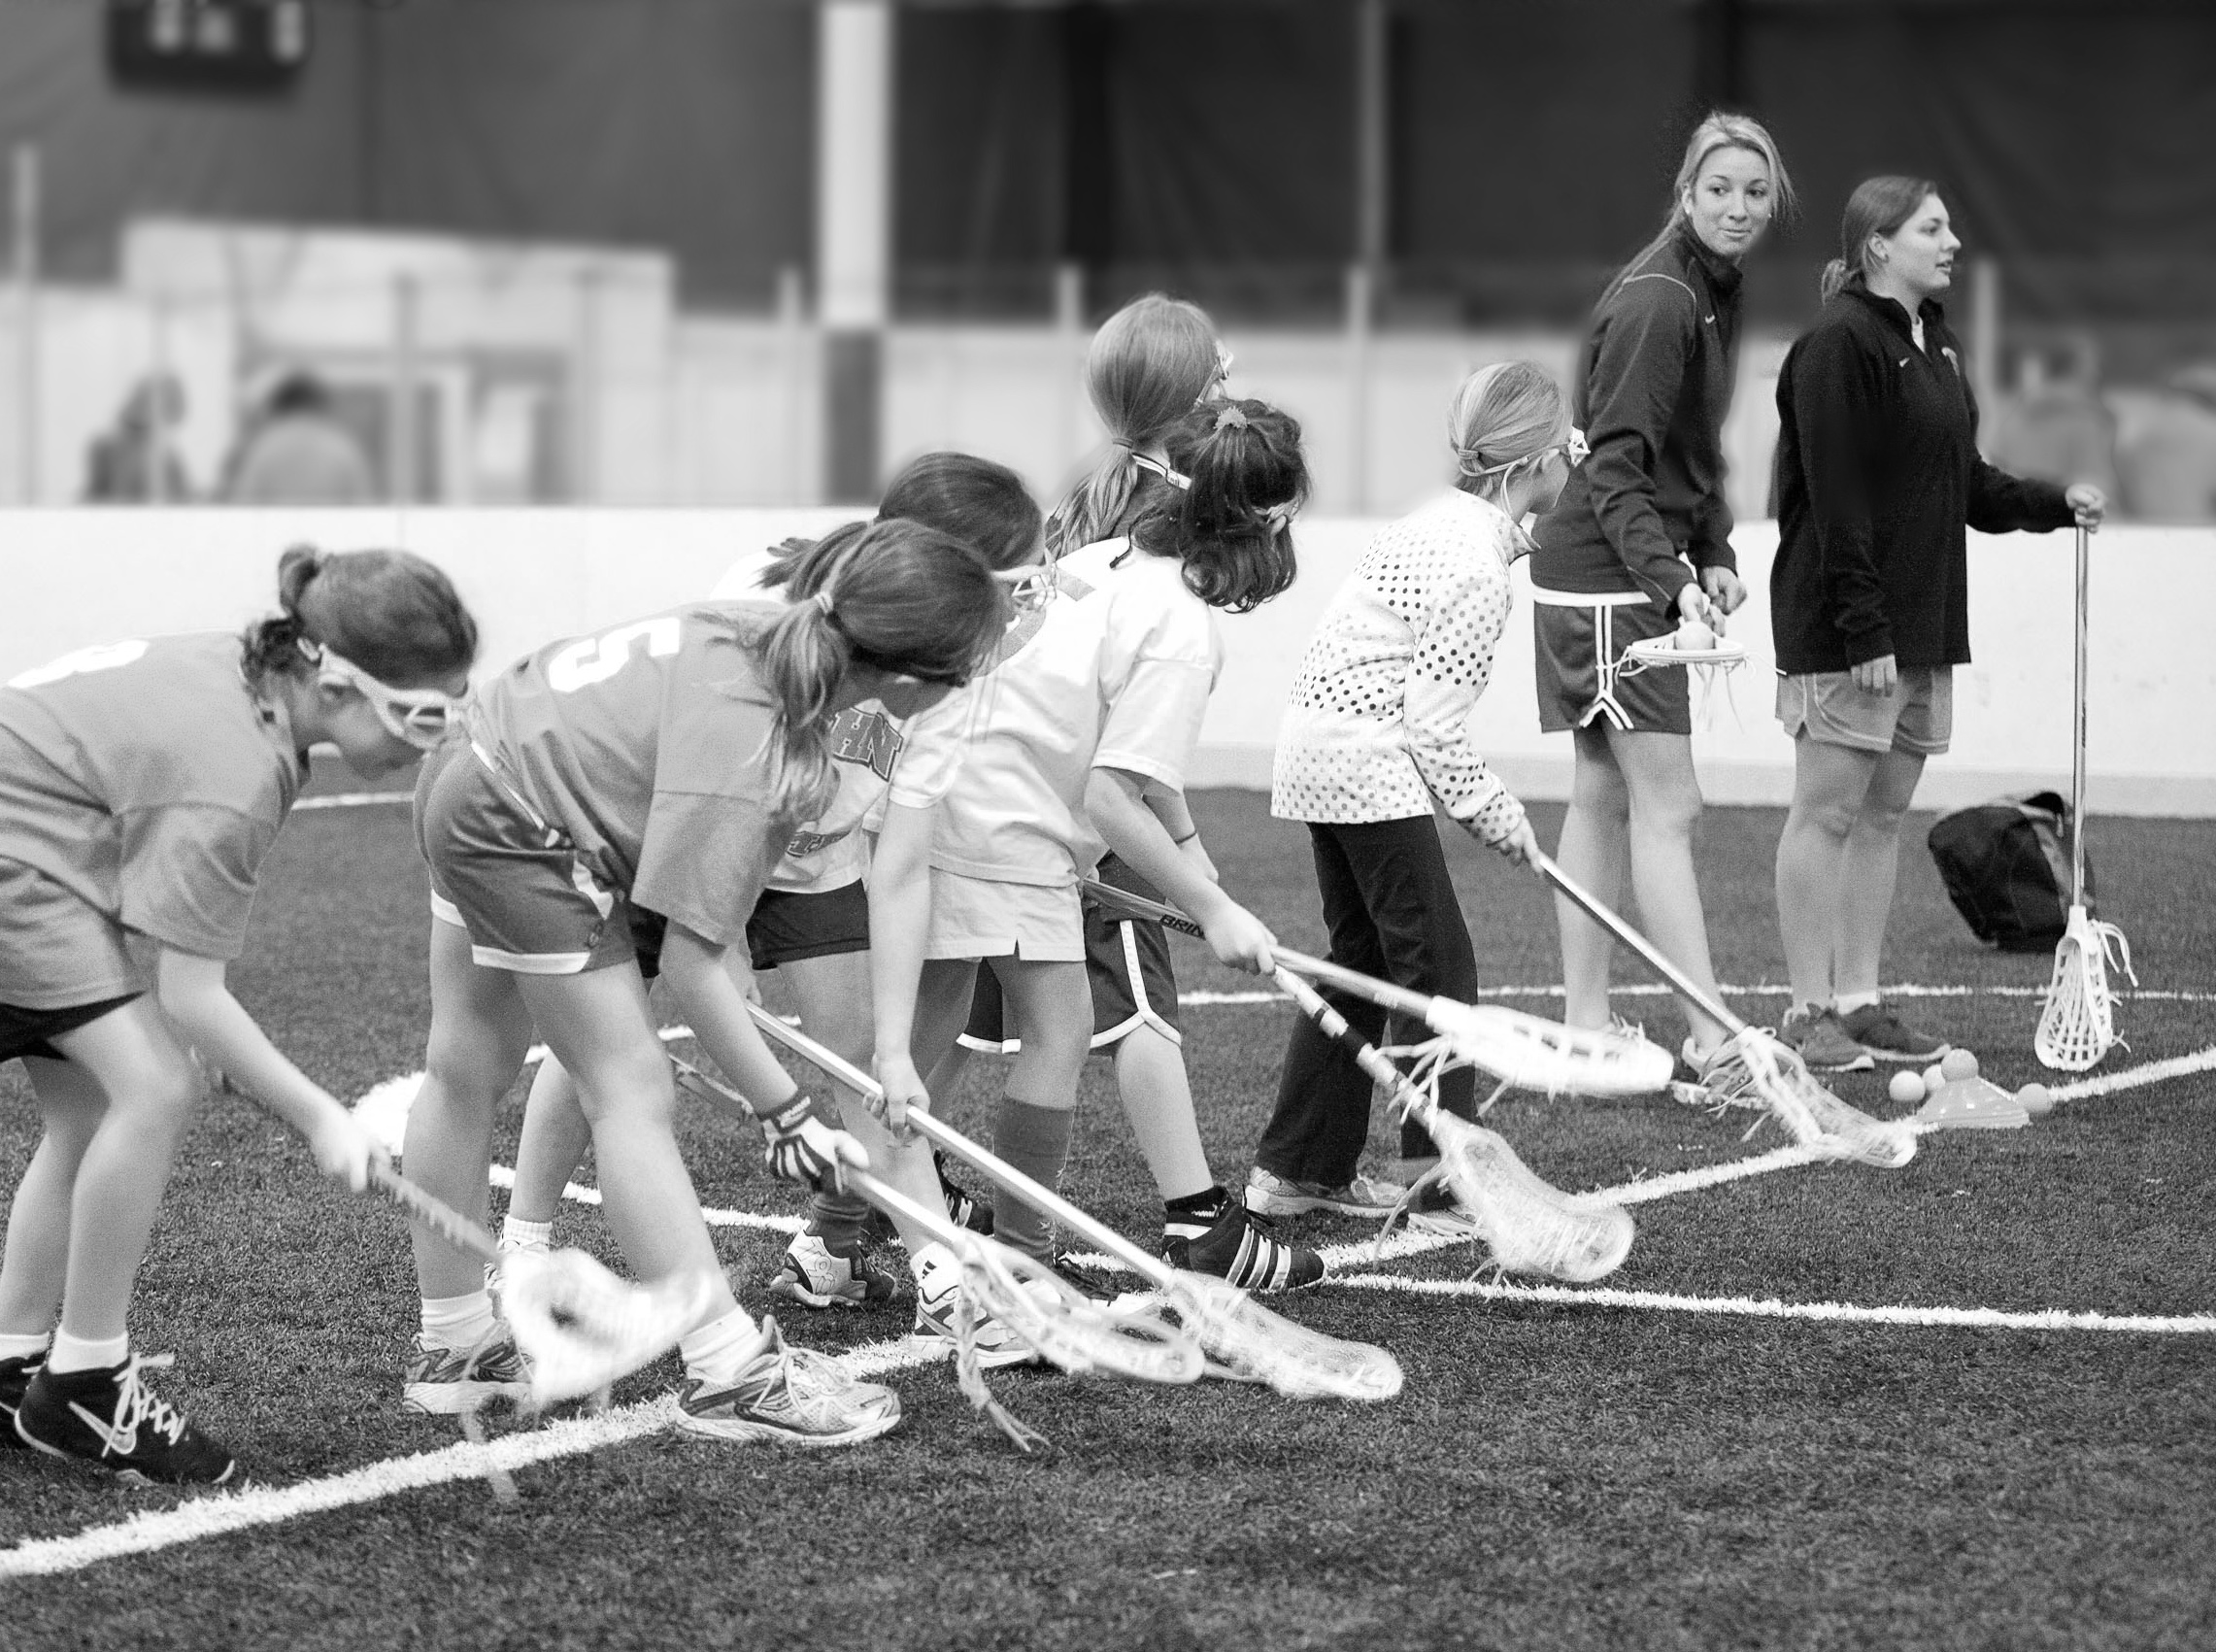 MethodLax CLinics - Our clinics are focused on players who love the game of lacrosse and are looking to improve in the offseason. These clinics provide the ultimate flexibility and an opportunity to give players with multiple activities the chance to fit lacrosse into their schedule at least 1 day per week.